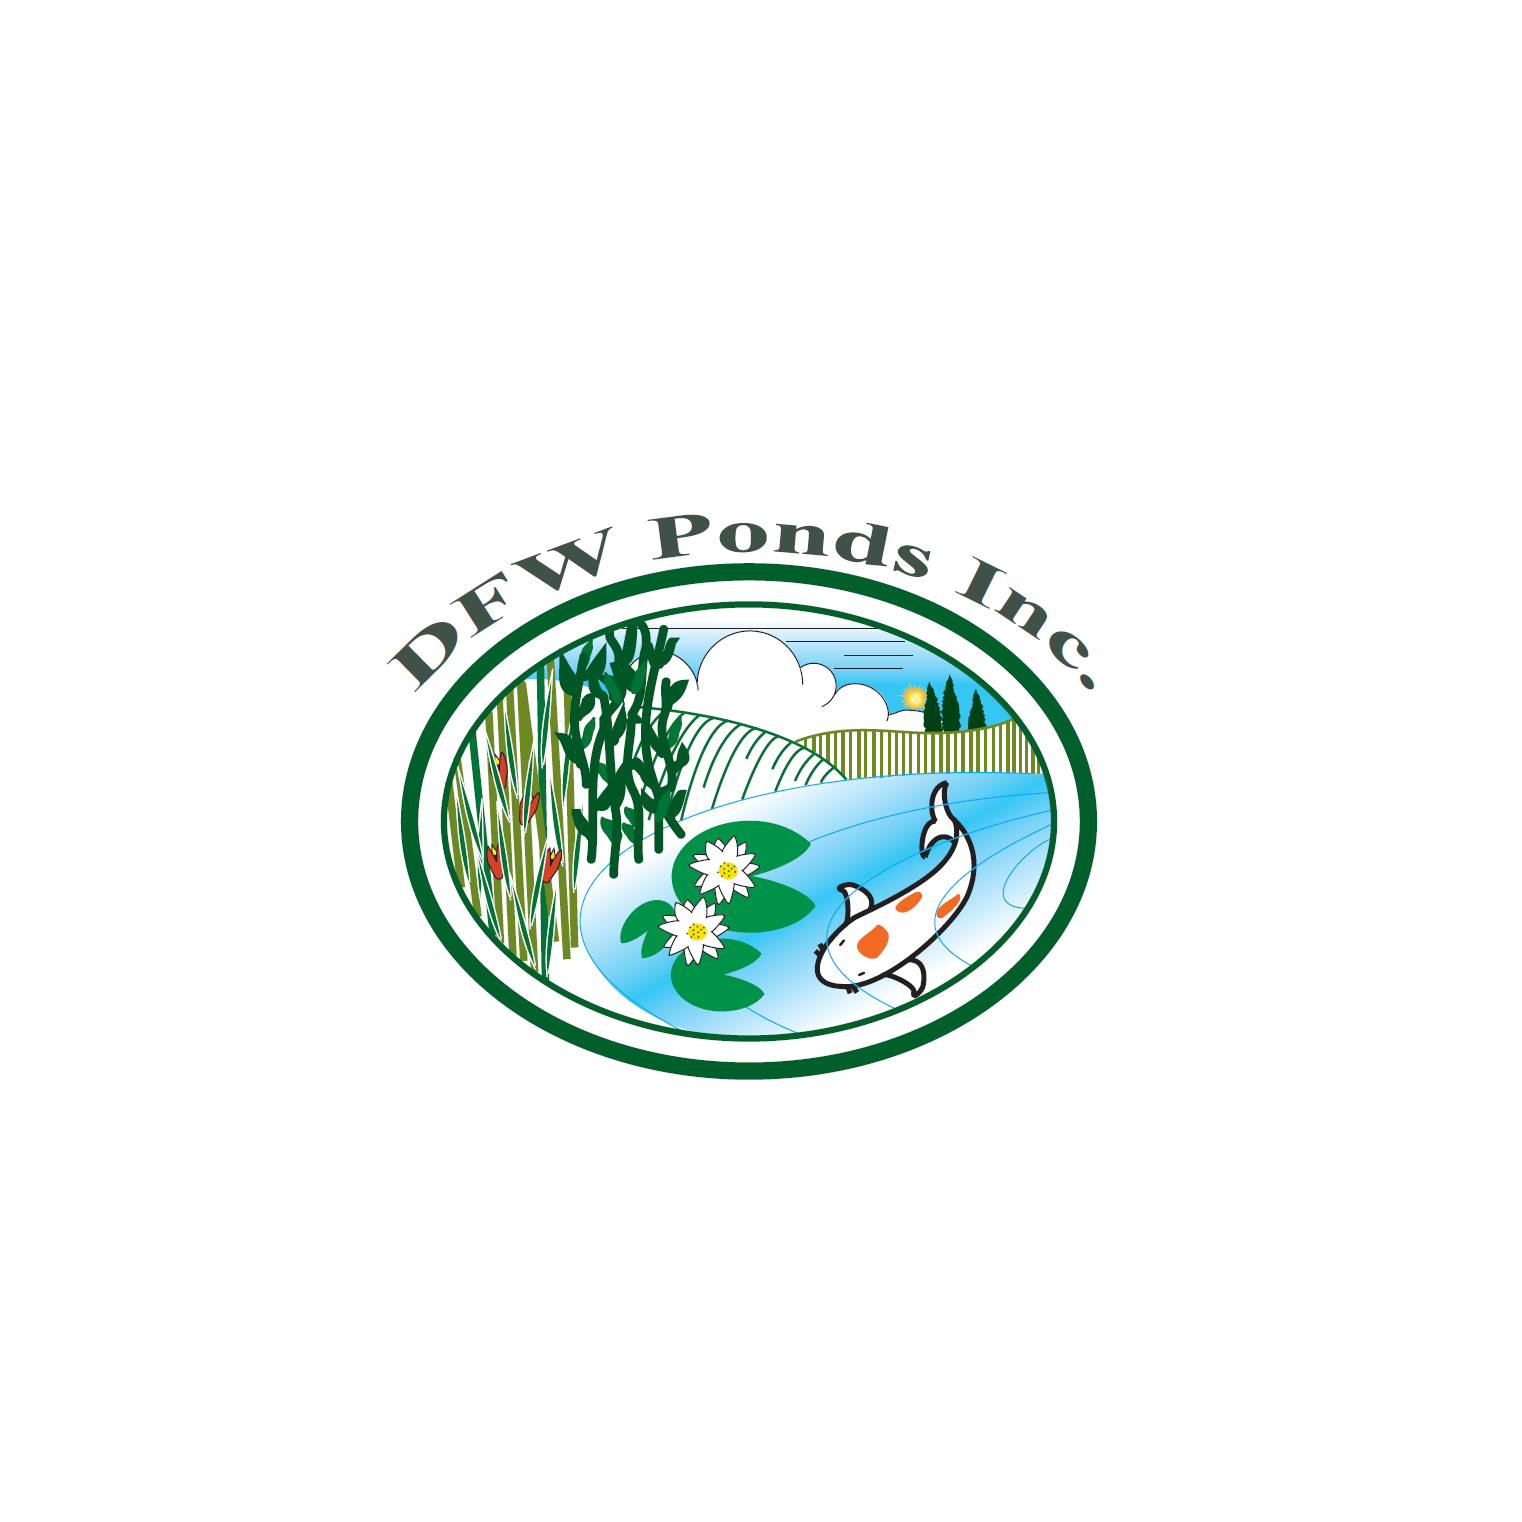 Dfw ponds inc coupons near me in 8coupons for Pond companies near me